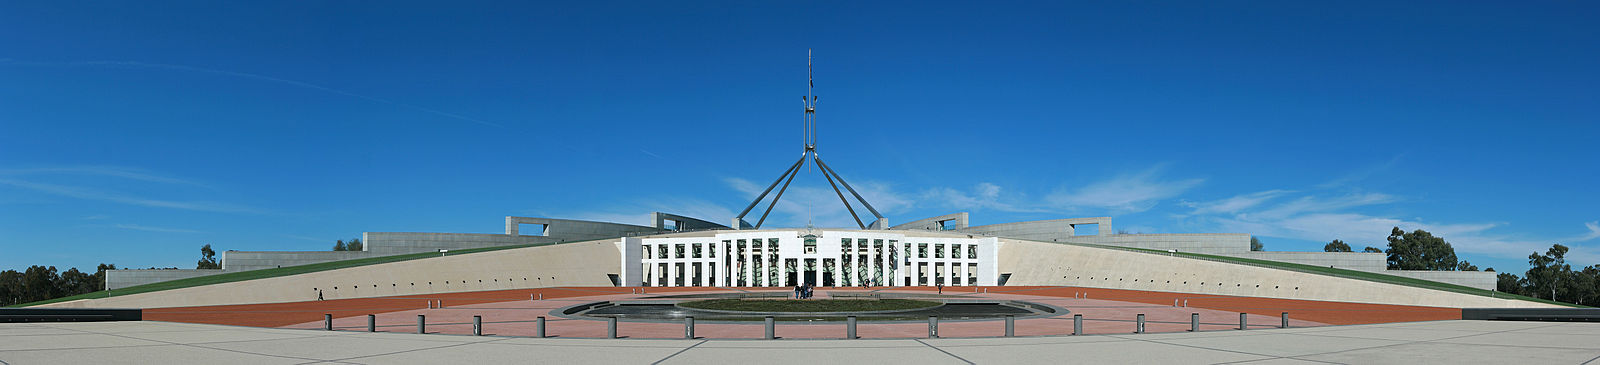 New Parliament House, opened in 1988, was built into Capital Hill behind Old Parliament House Parliament House, Canberra, Pano jjron 25.9.2008-edit1.jpg